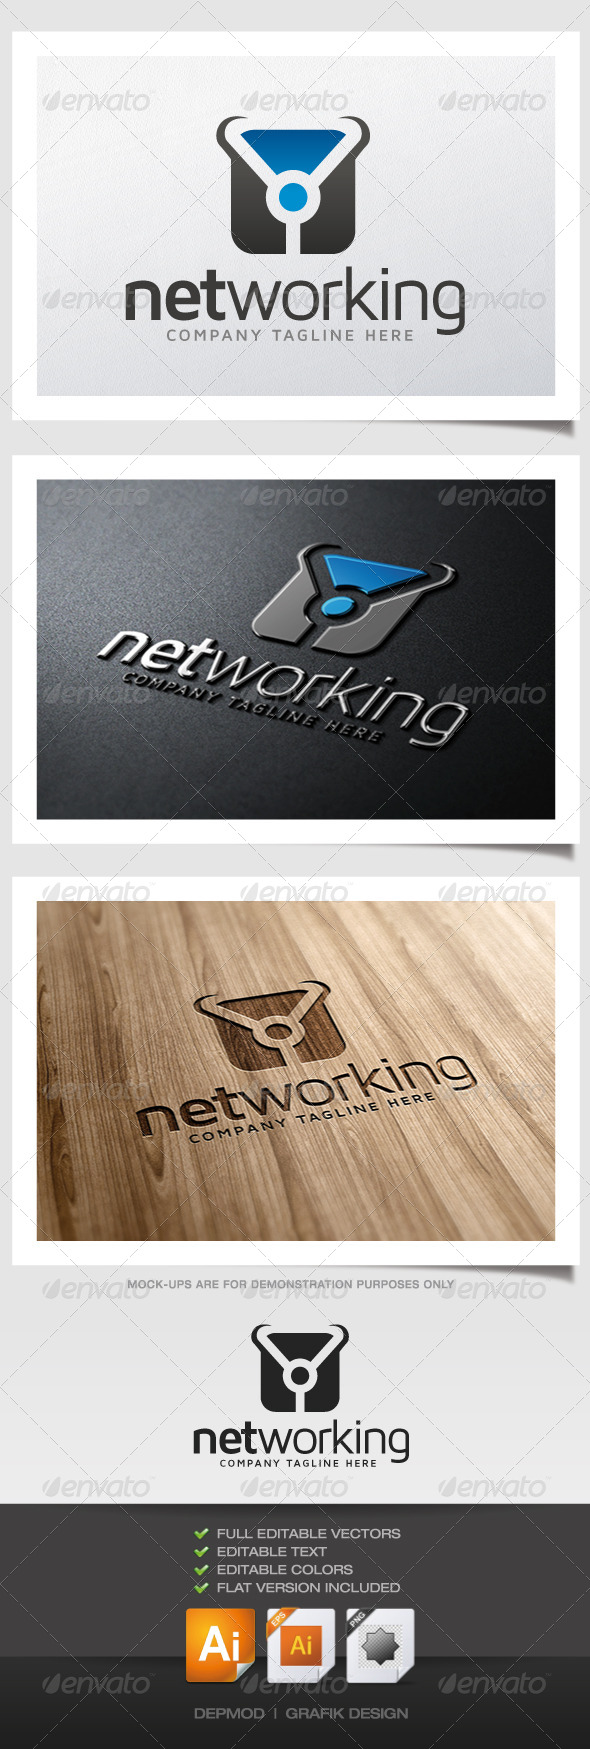 GraphicRiver Networking Logo 5340944